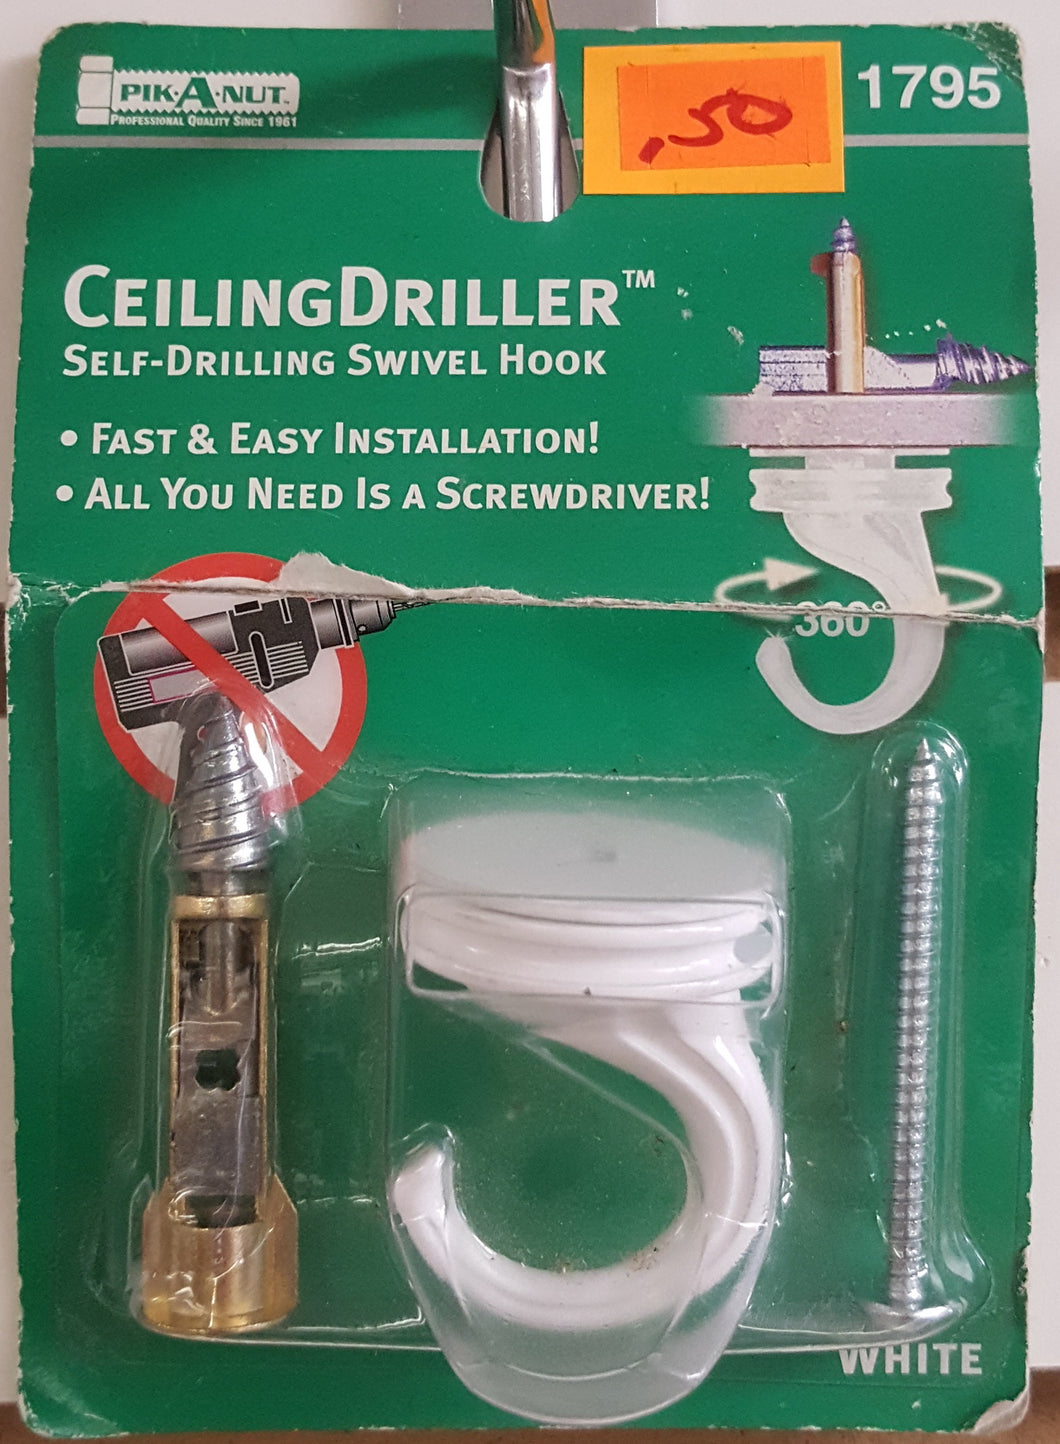 Pik-A-Nut 1795 Ceiling Driller Self-Drilling Swivel Hook - White